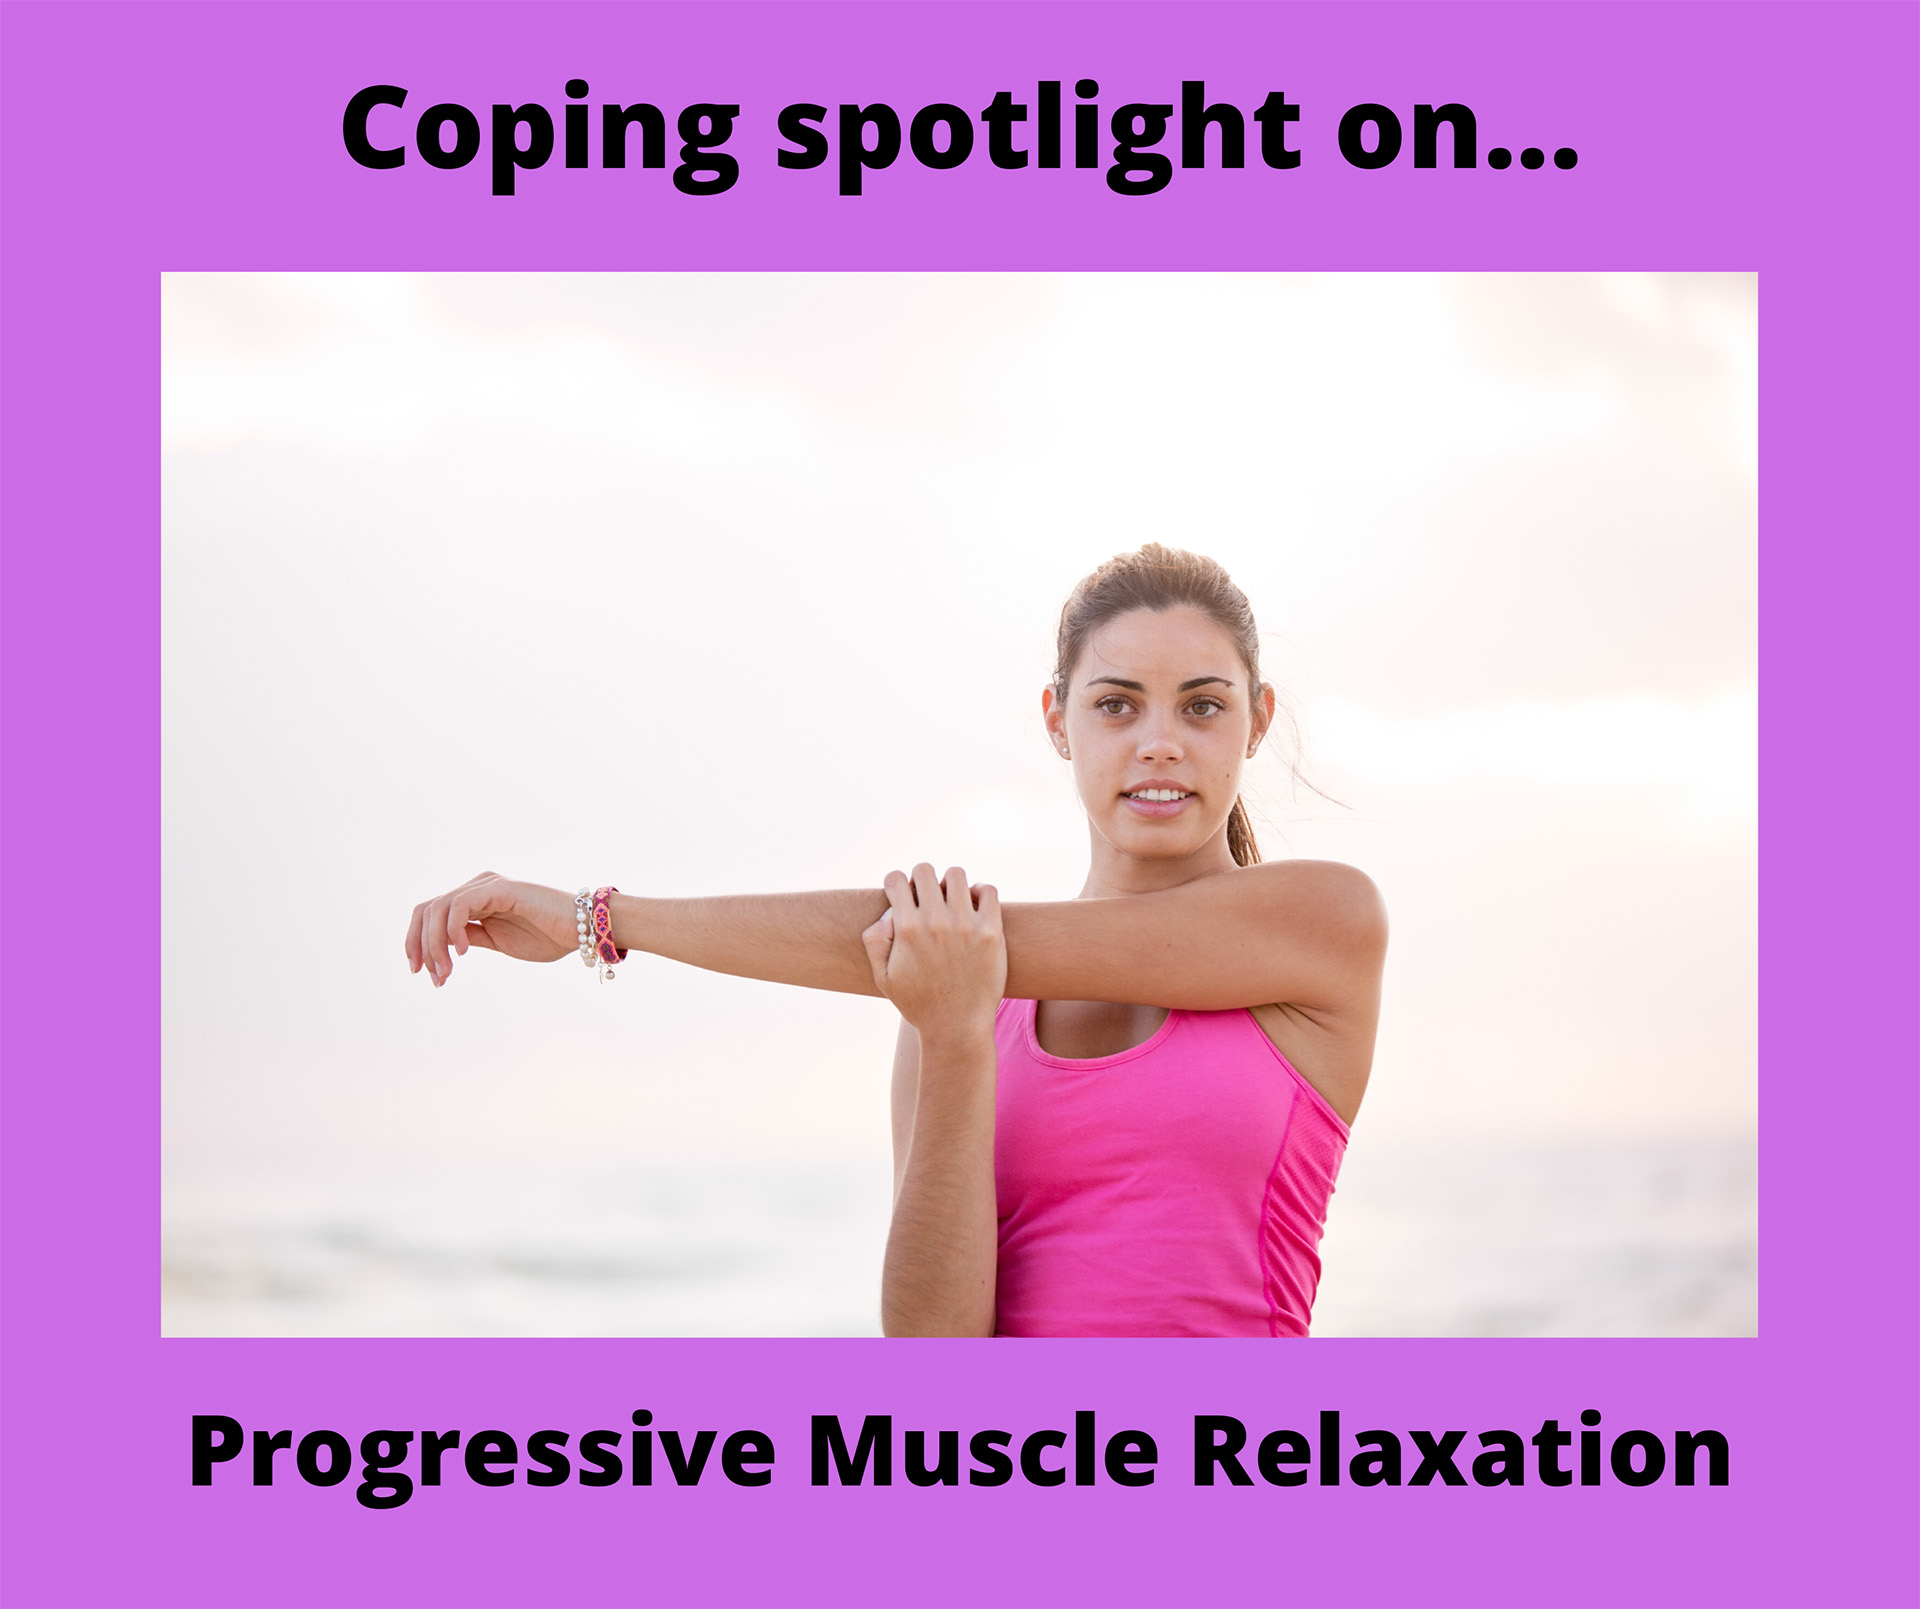 Coping spotlight on…Progressive Muscle Relaxation